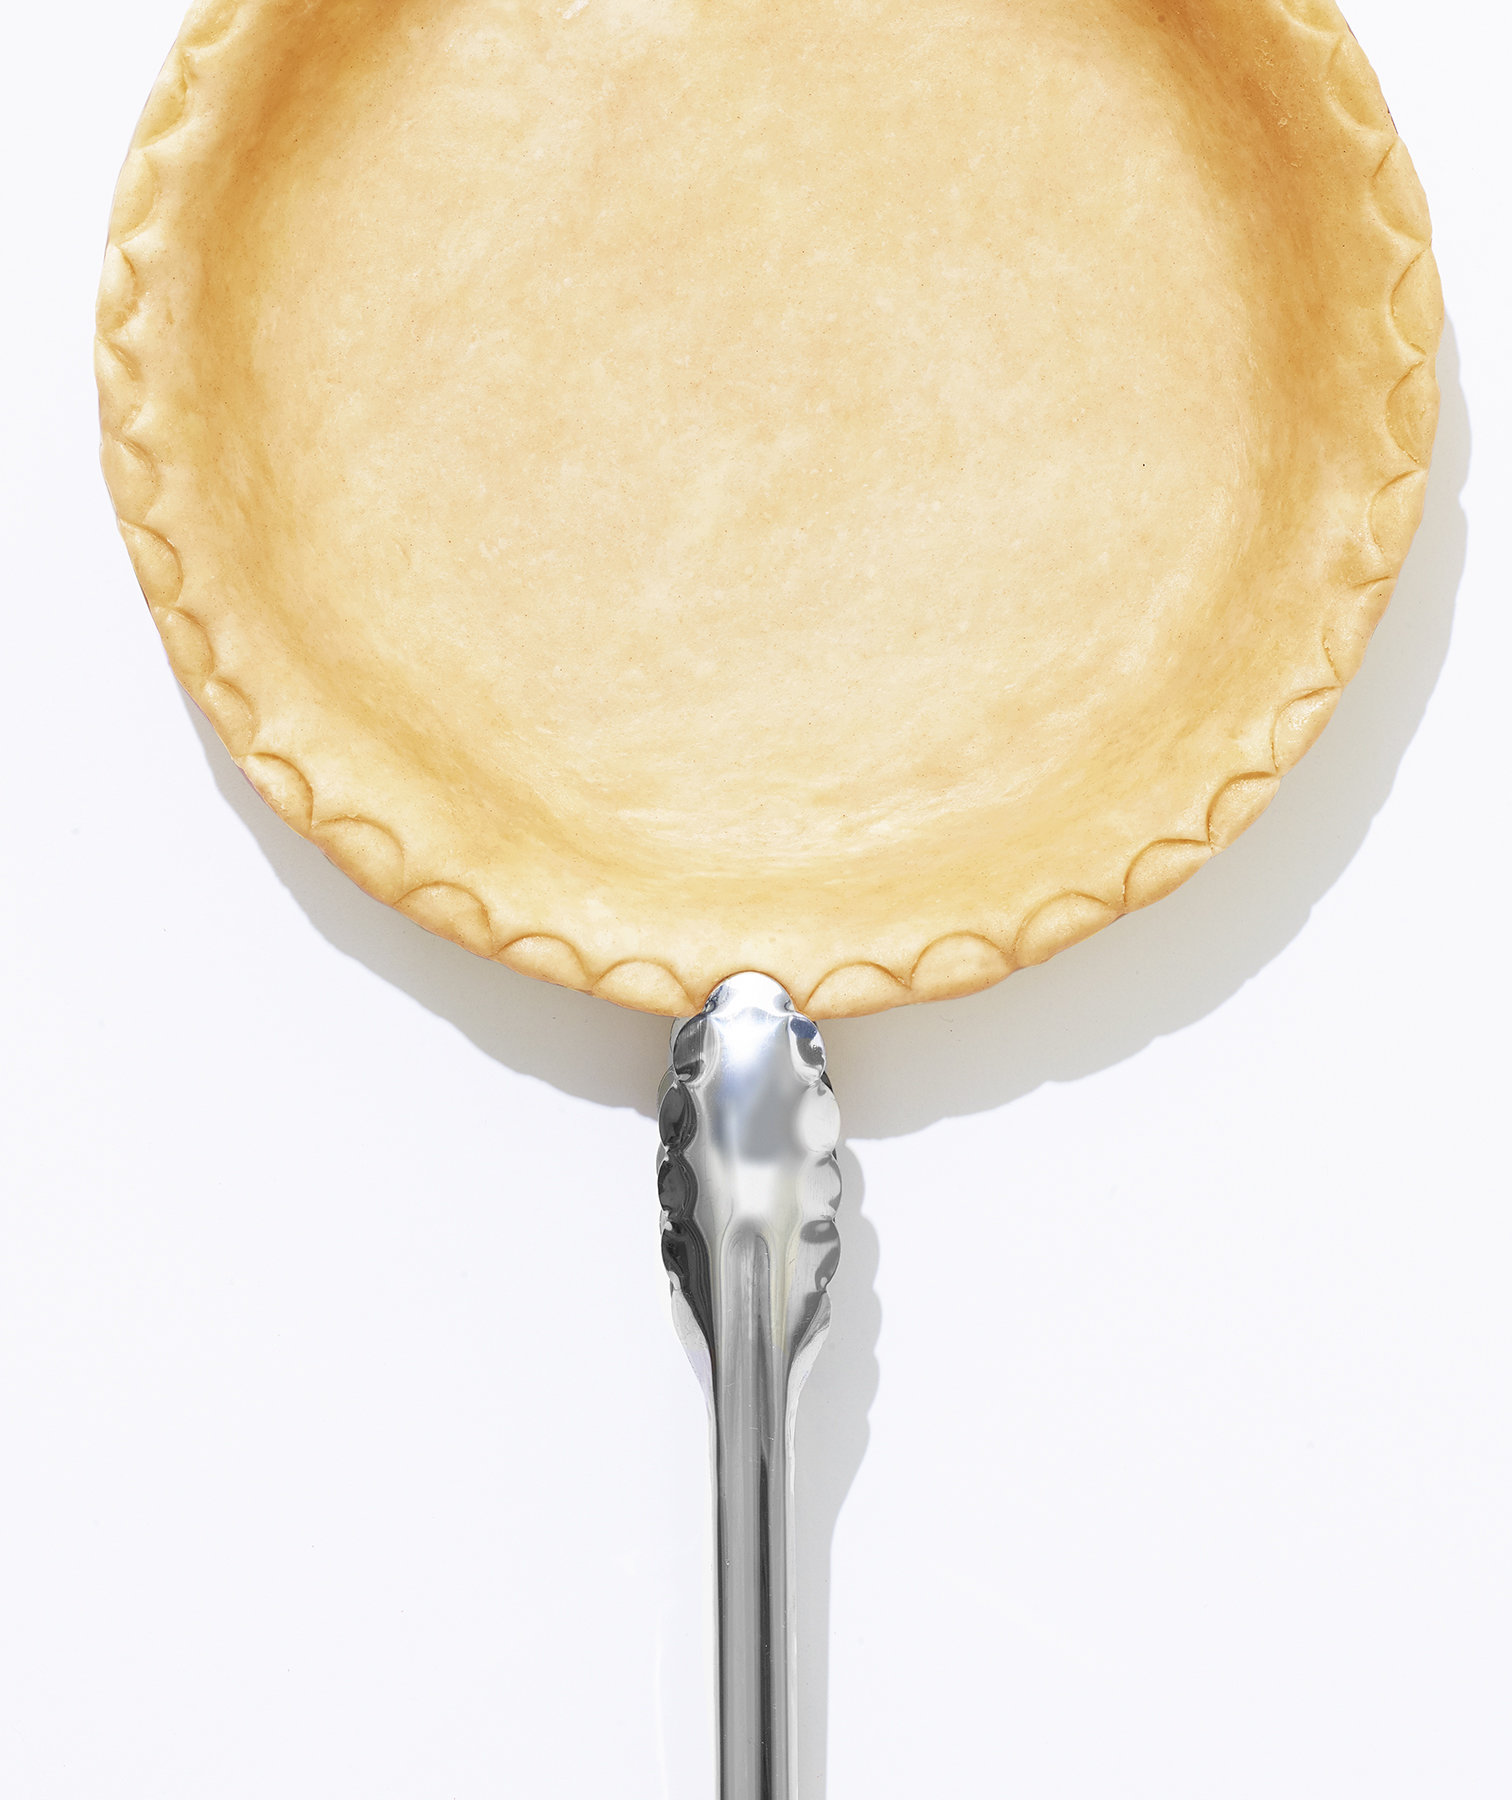 Tongs Pie Crust